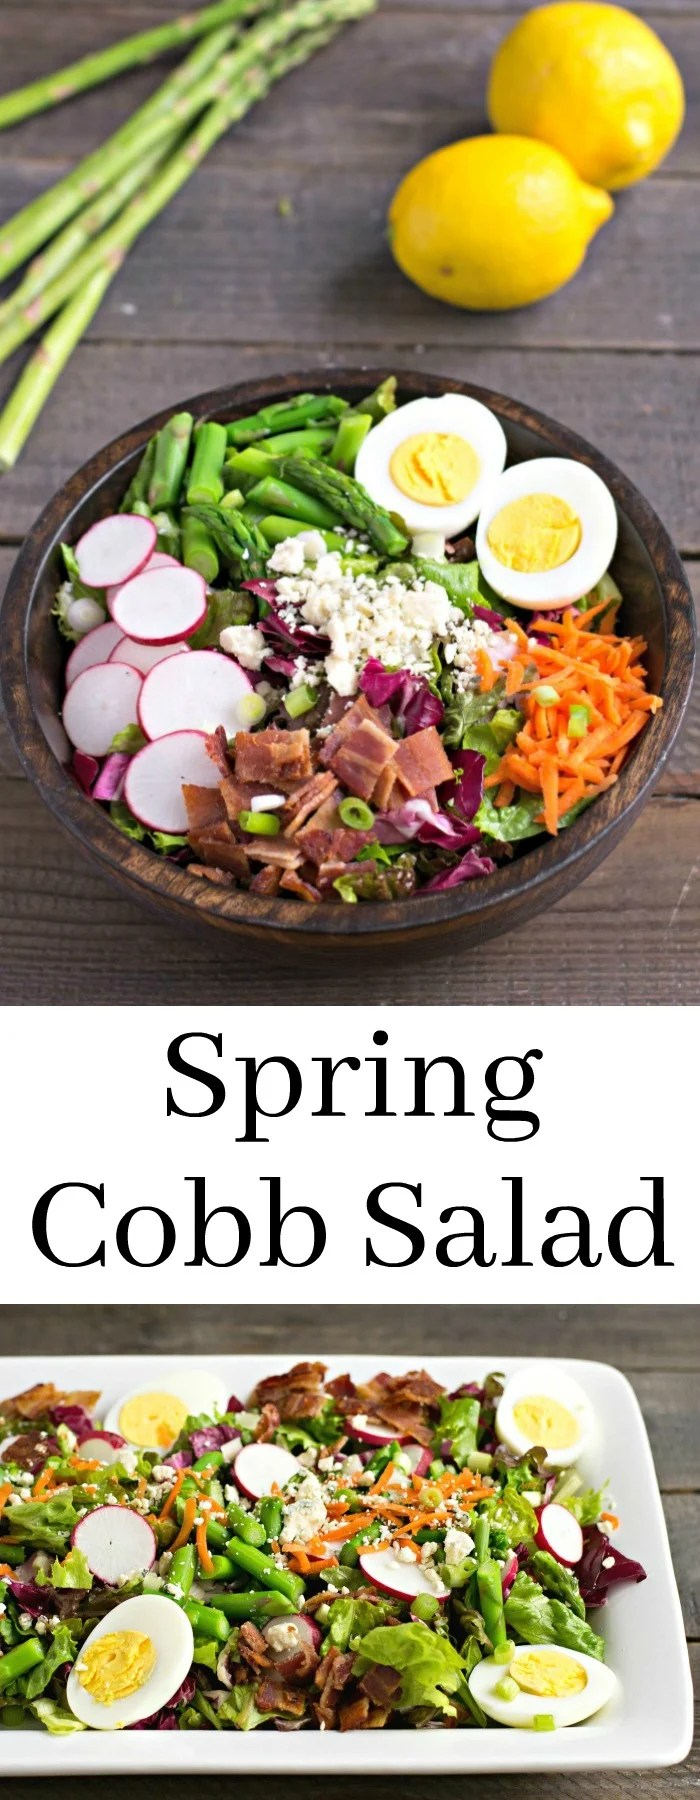 This Spring Cobb Salad is such a delicious burst of fresh produce! I love adding asparagus and radish to the traditional flavors of Cobb salad for a spring meal.